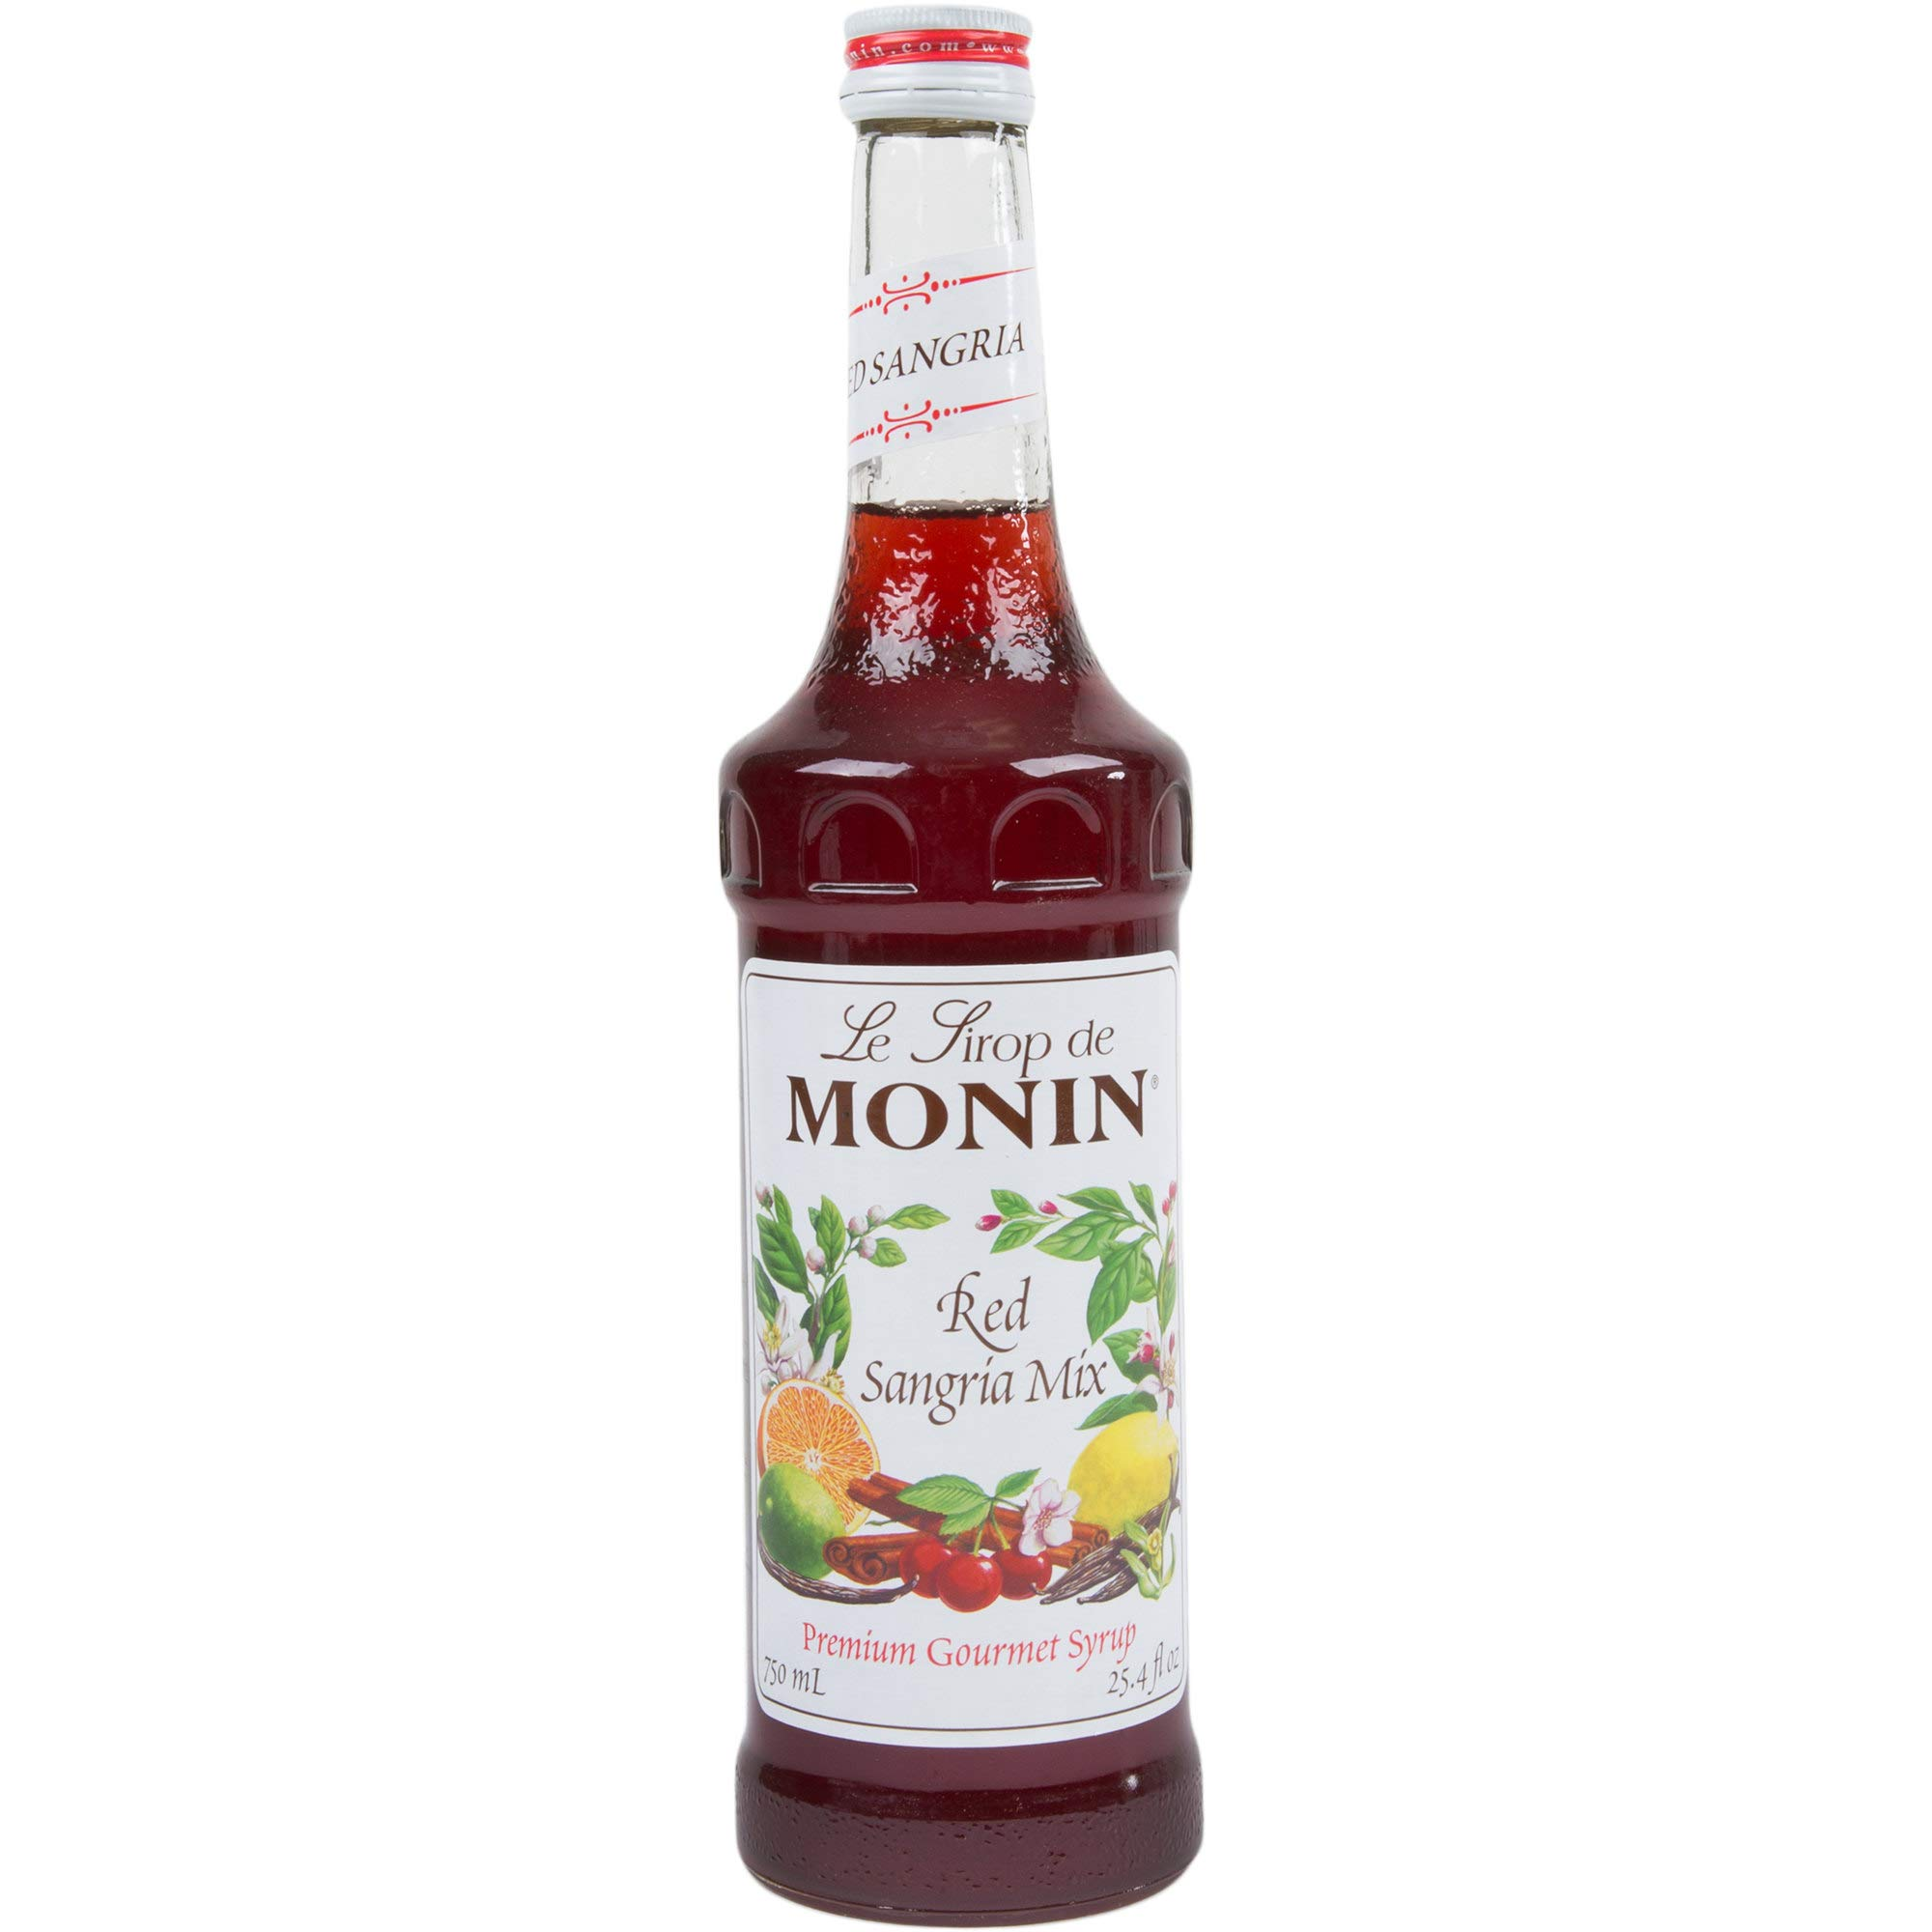 Monin Flavored Syrup, Red Sangria Mix,750 ml bottle